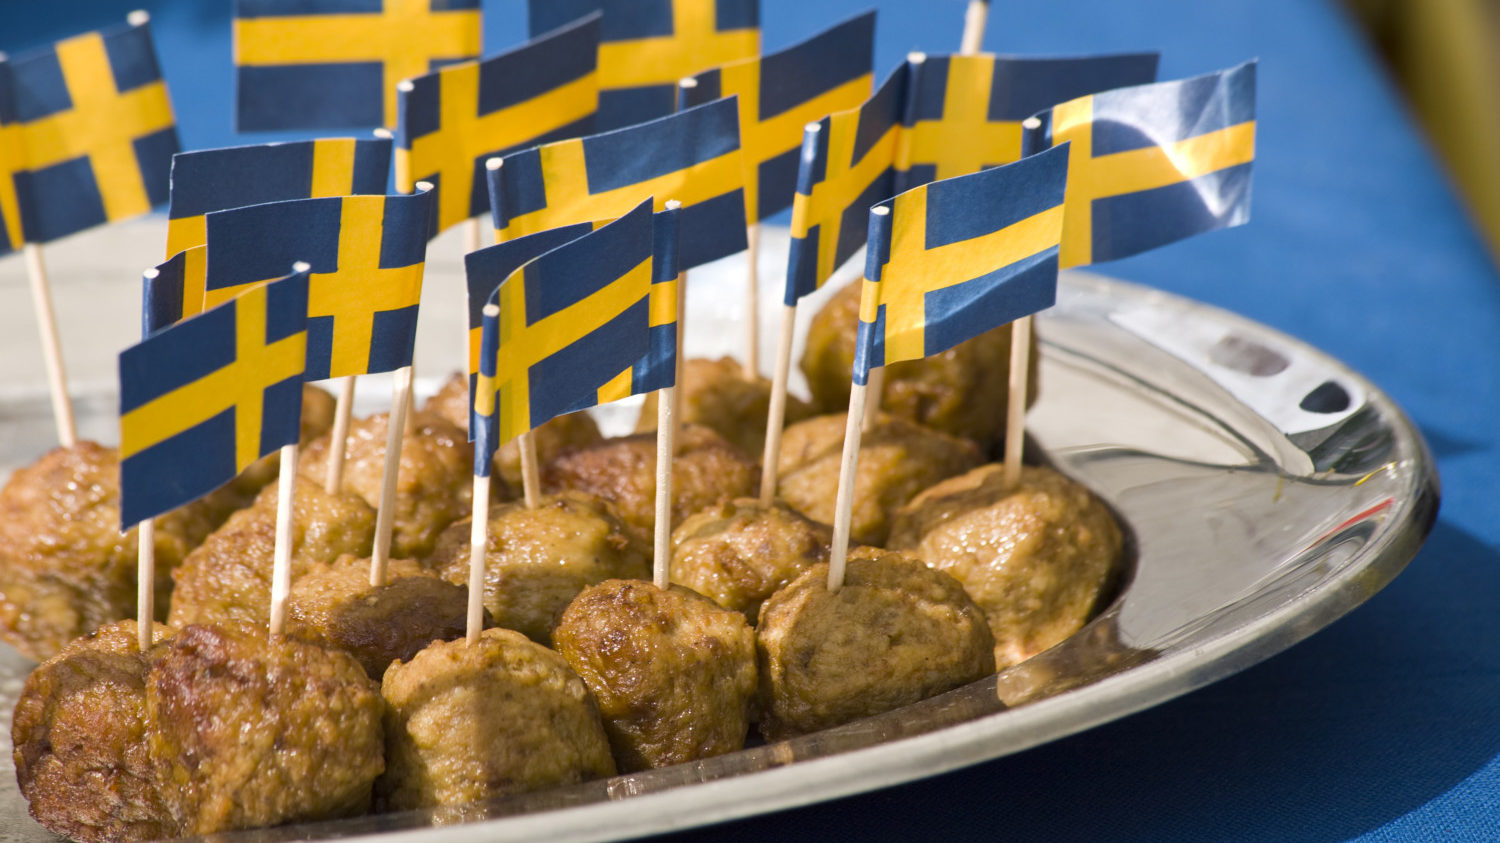 Ikea Released Their Famous Swedish Meatballs Recipe Simplemost